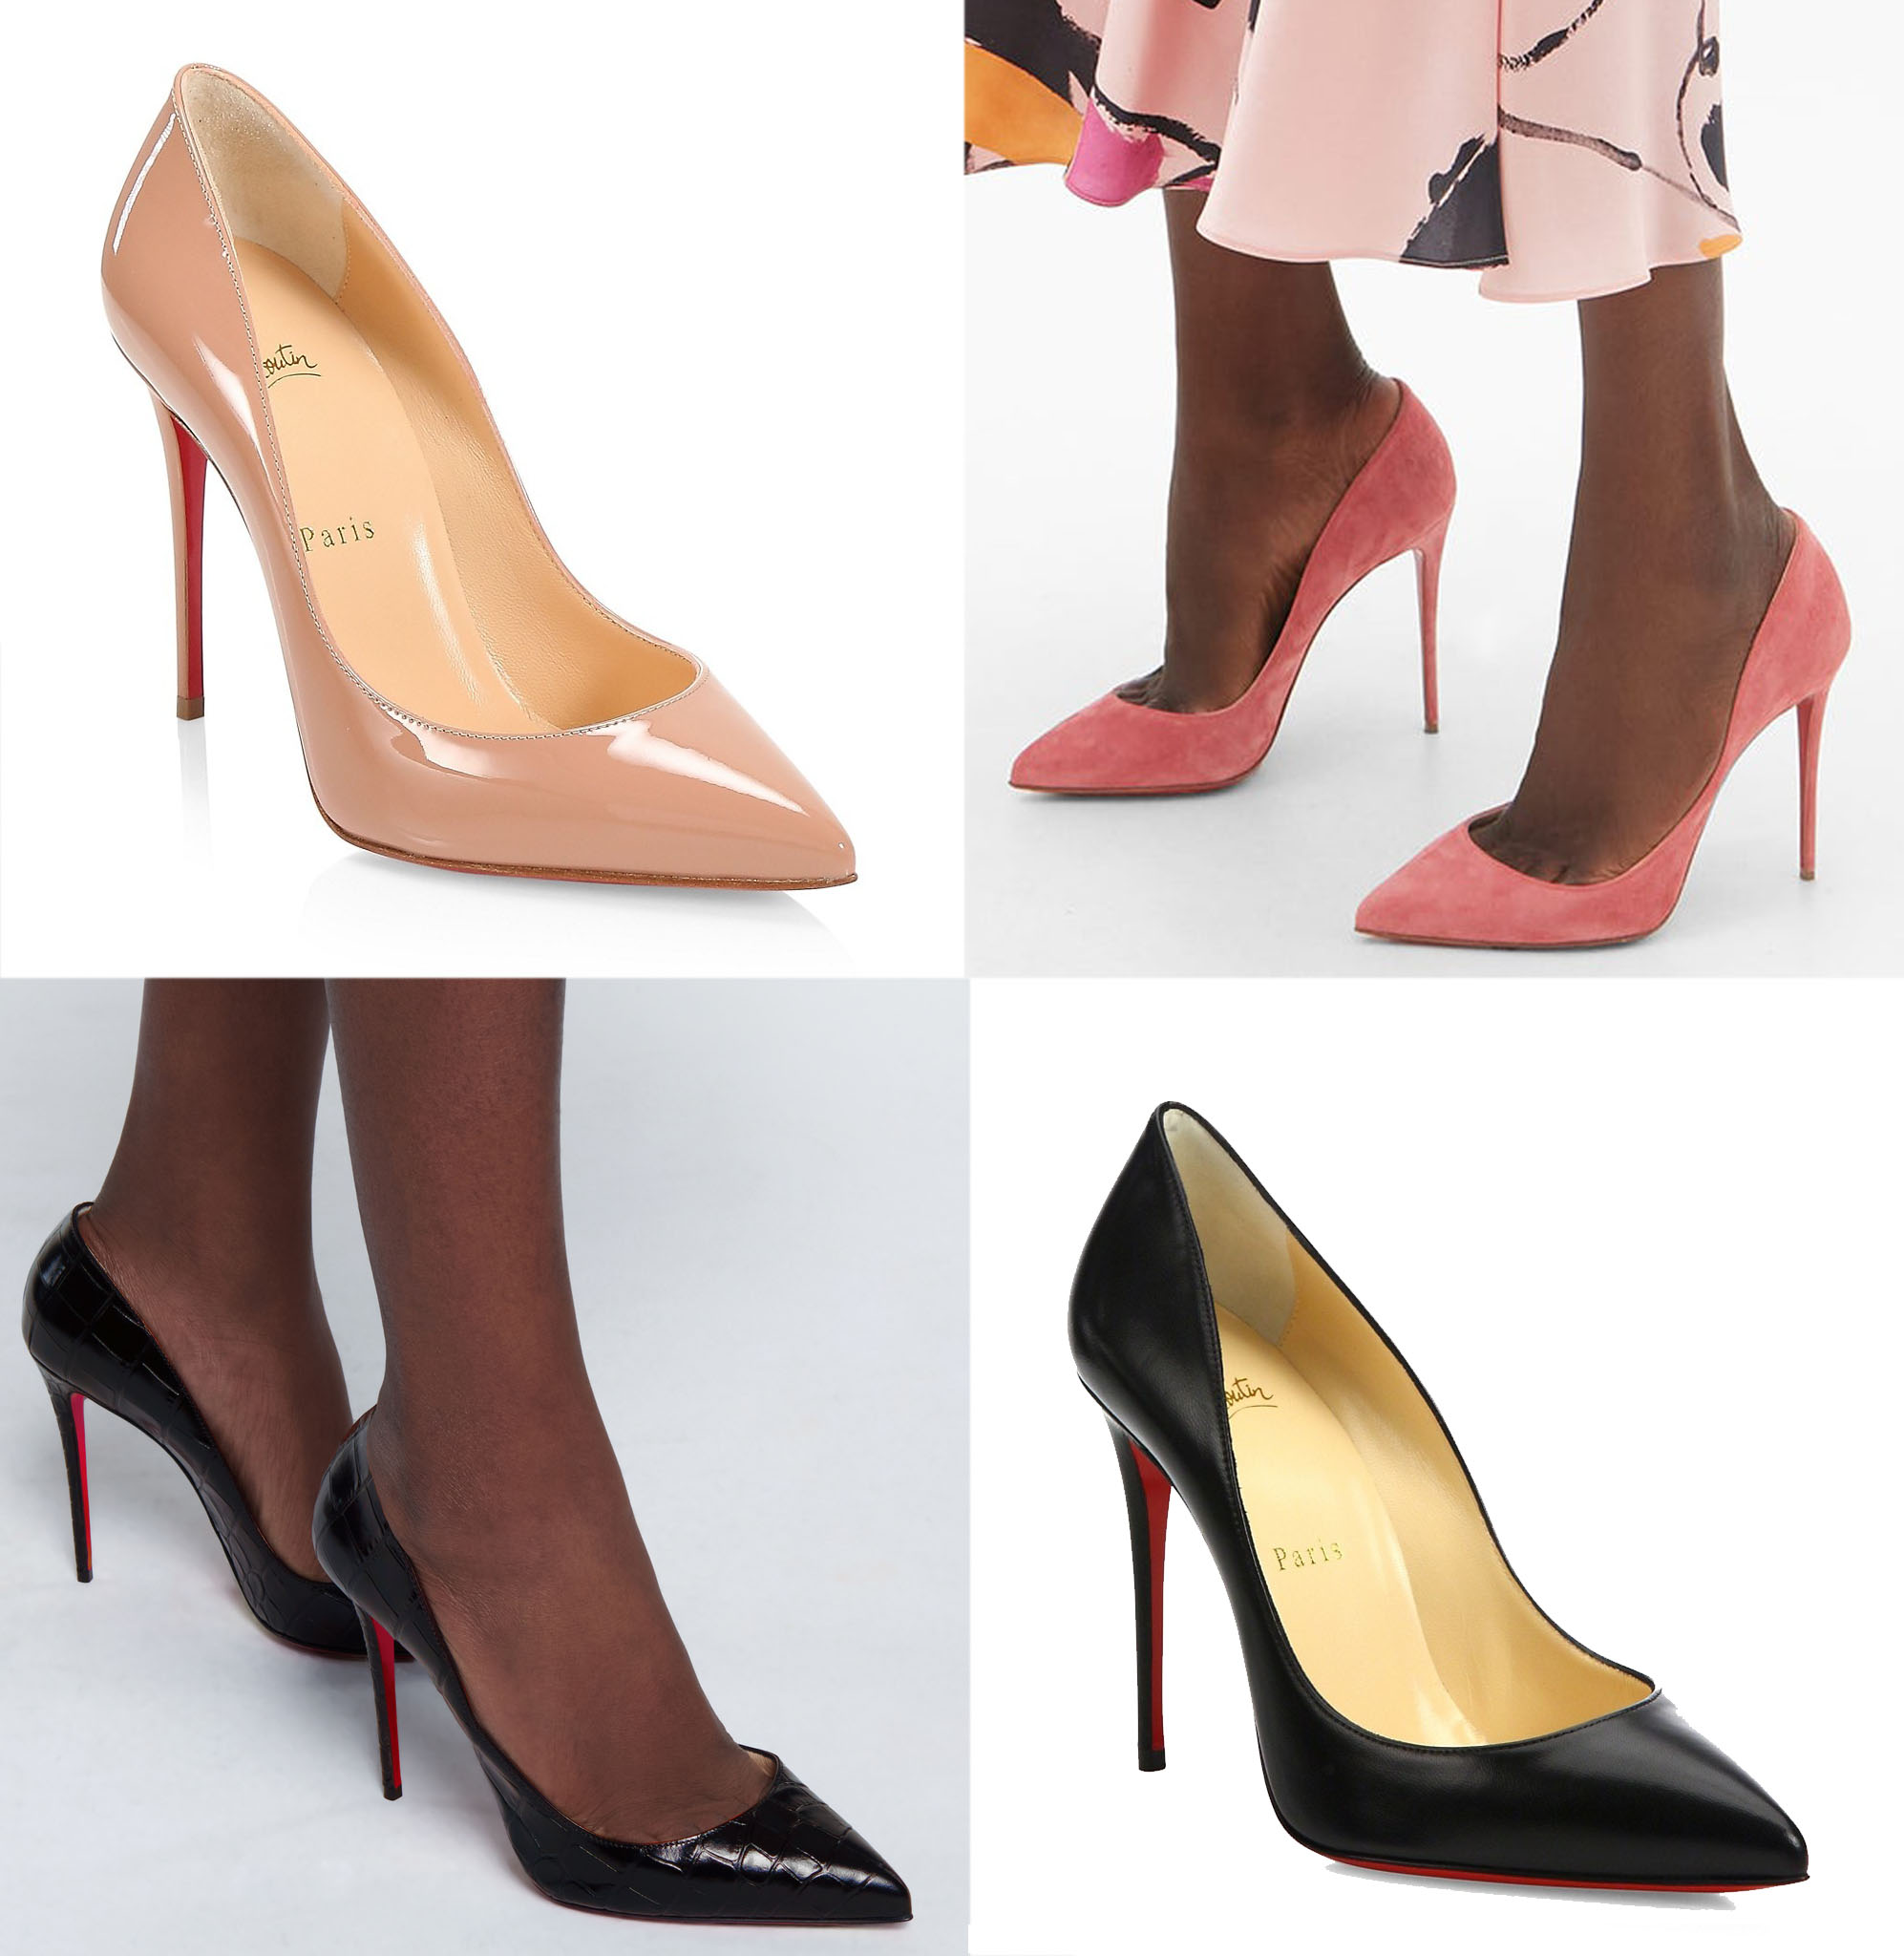 The Pigalle Follies has a slightly longer toe box than the Pigalle but shorter than the So Kate